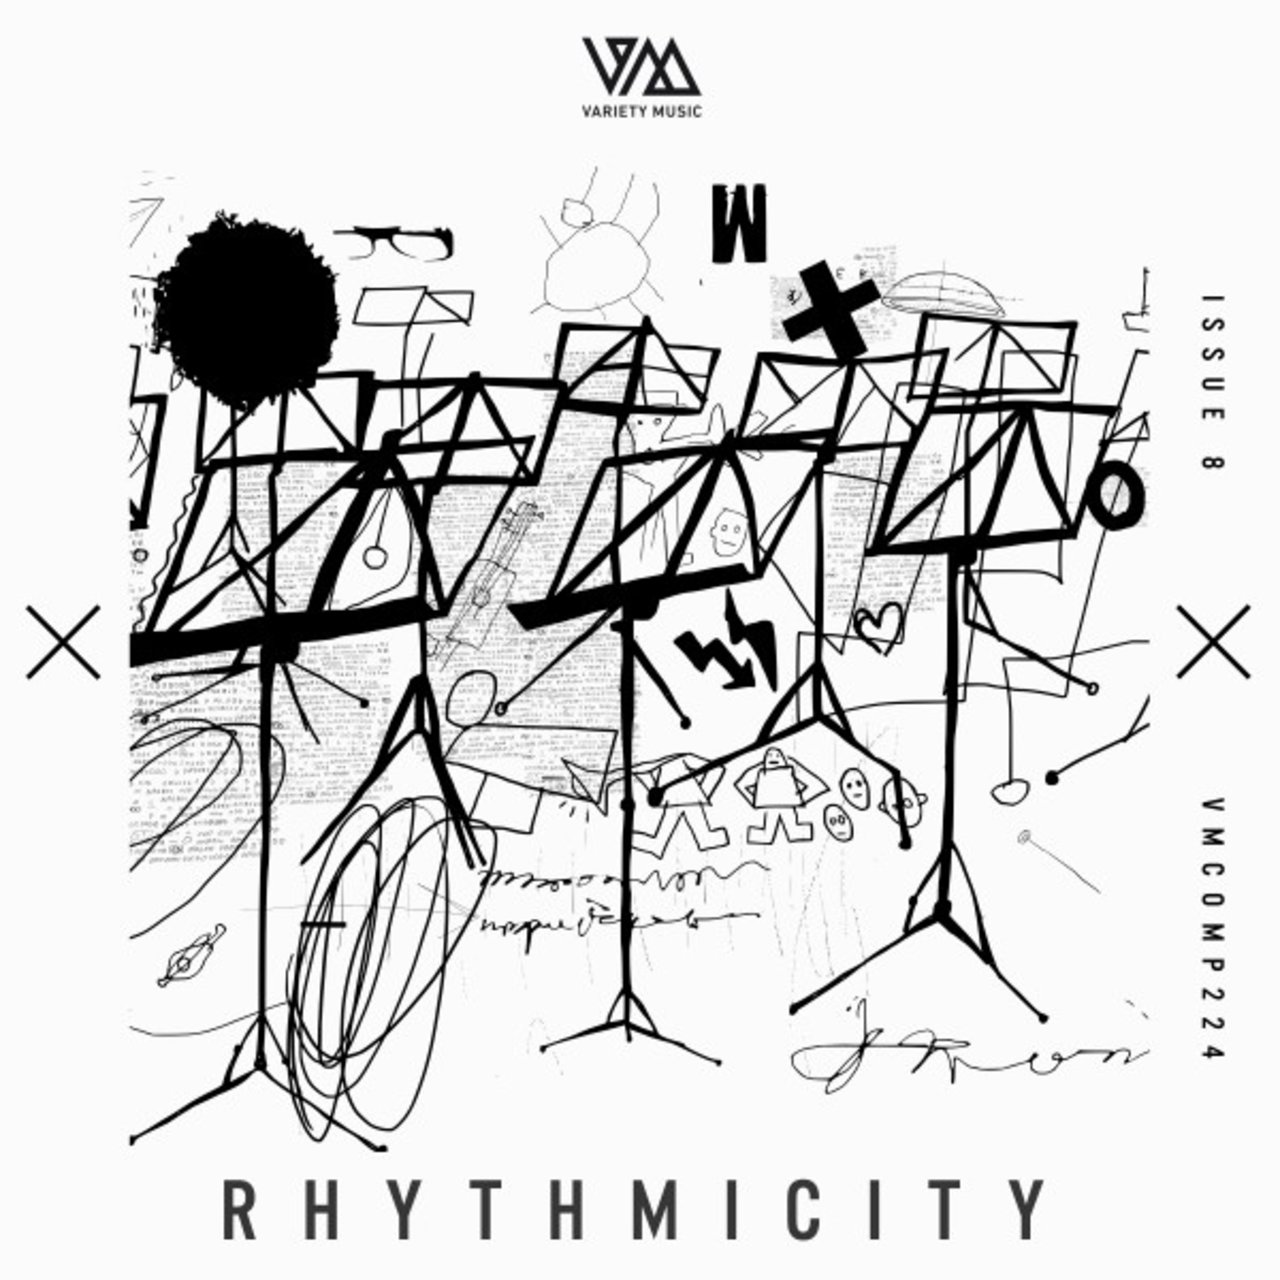 Rhythmicity Issue 8